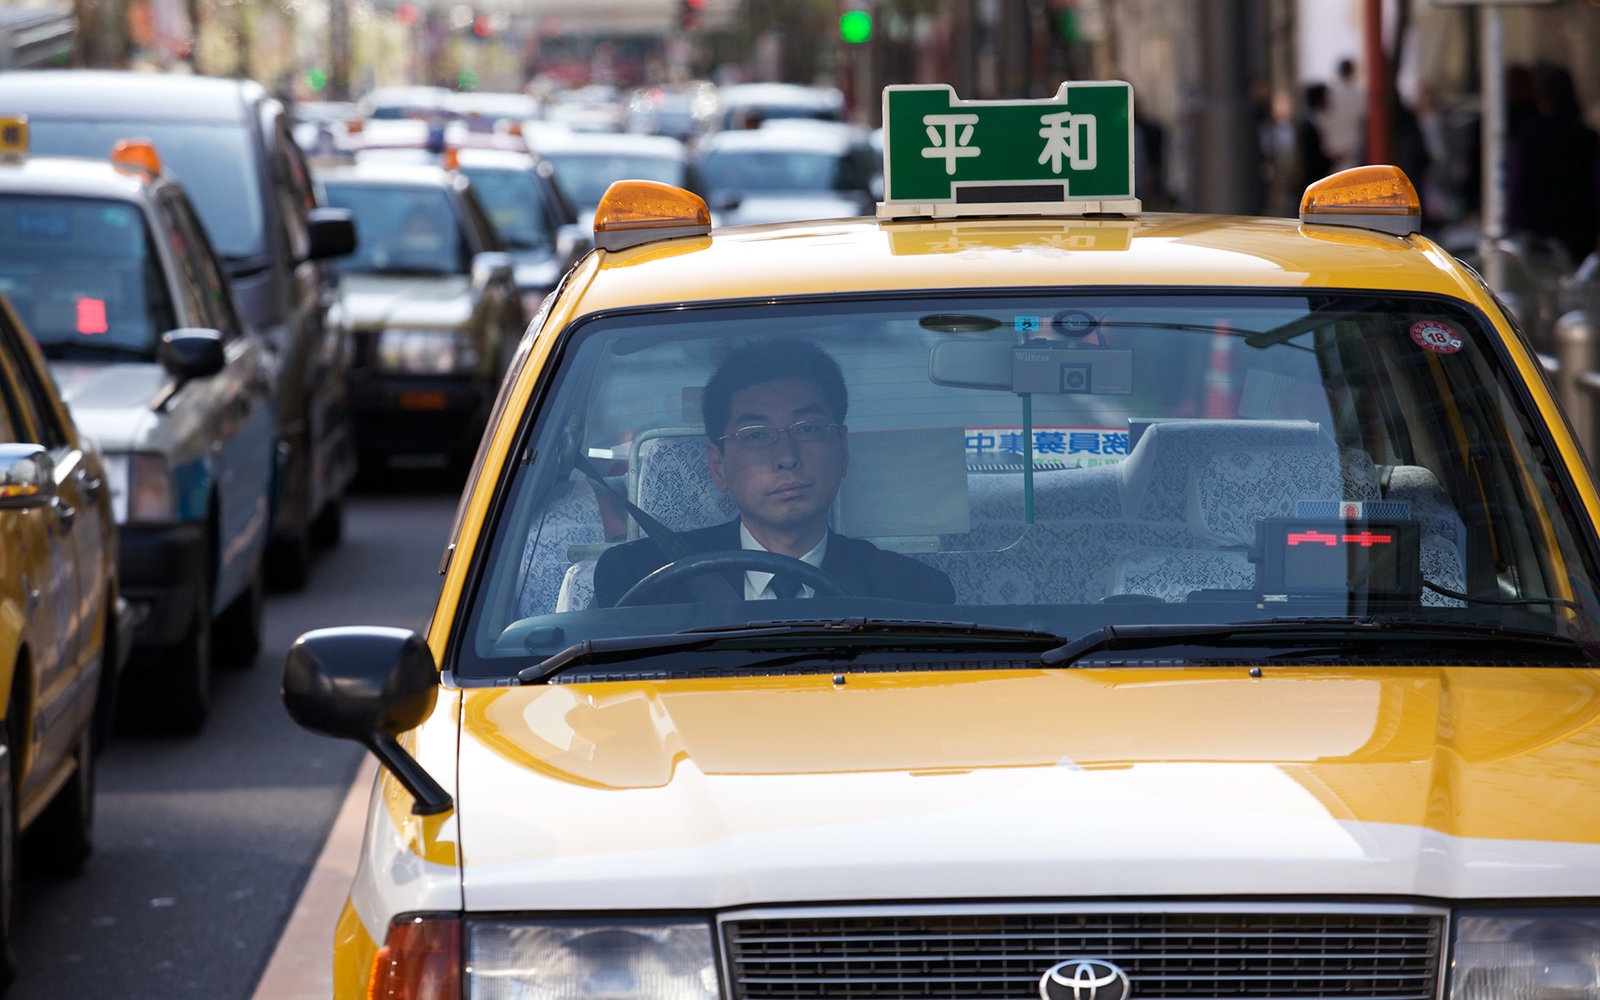 Taxi Drivers In Japan Claim Theyve Had Ghost Passengers